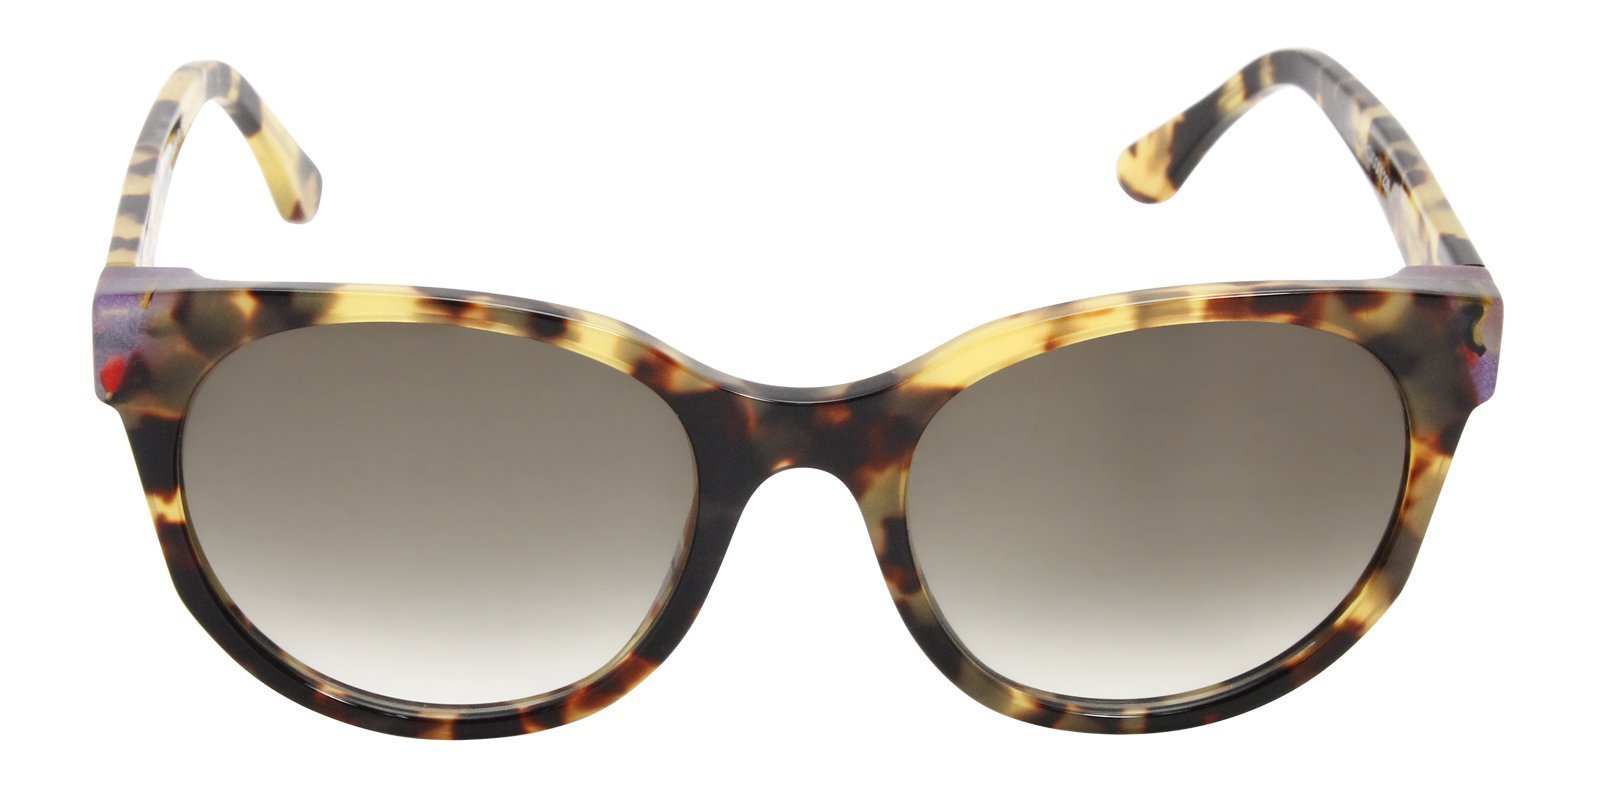 Thierry Lasry - Peroxxxy Tortoise Oval Women Sunglasses - 57mm-Sunglasses-Designer Eyes